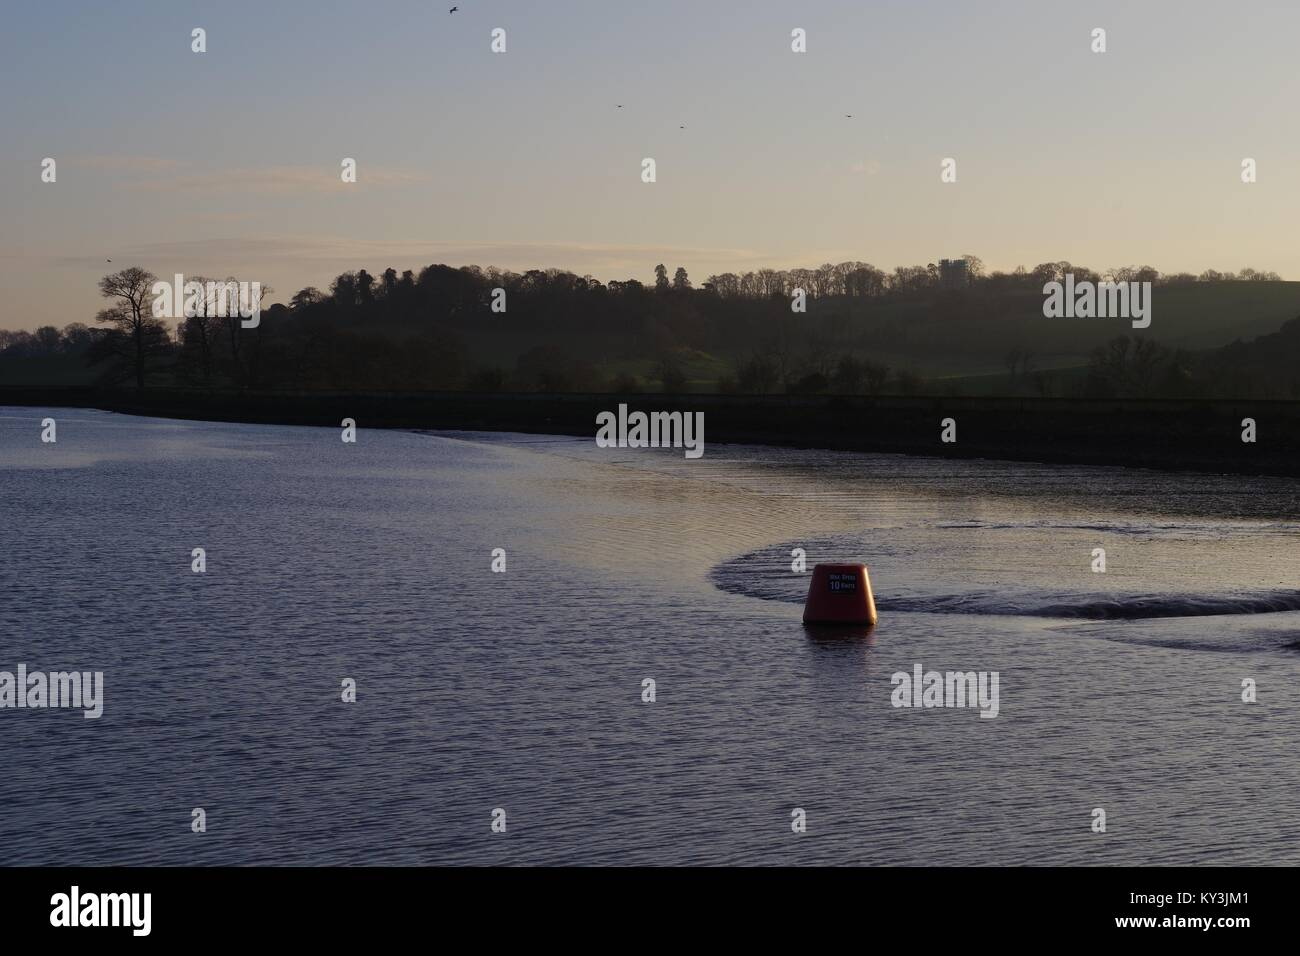 Wooded Countryside of Powderham Estate and the River Exe Estuary at Dusk. South Devon, UK. - Stock Image